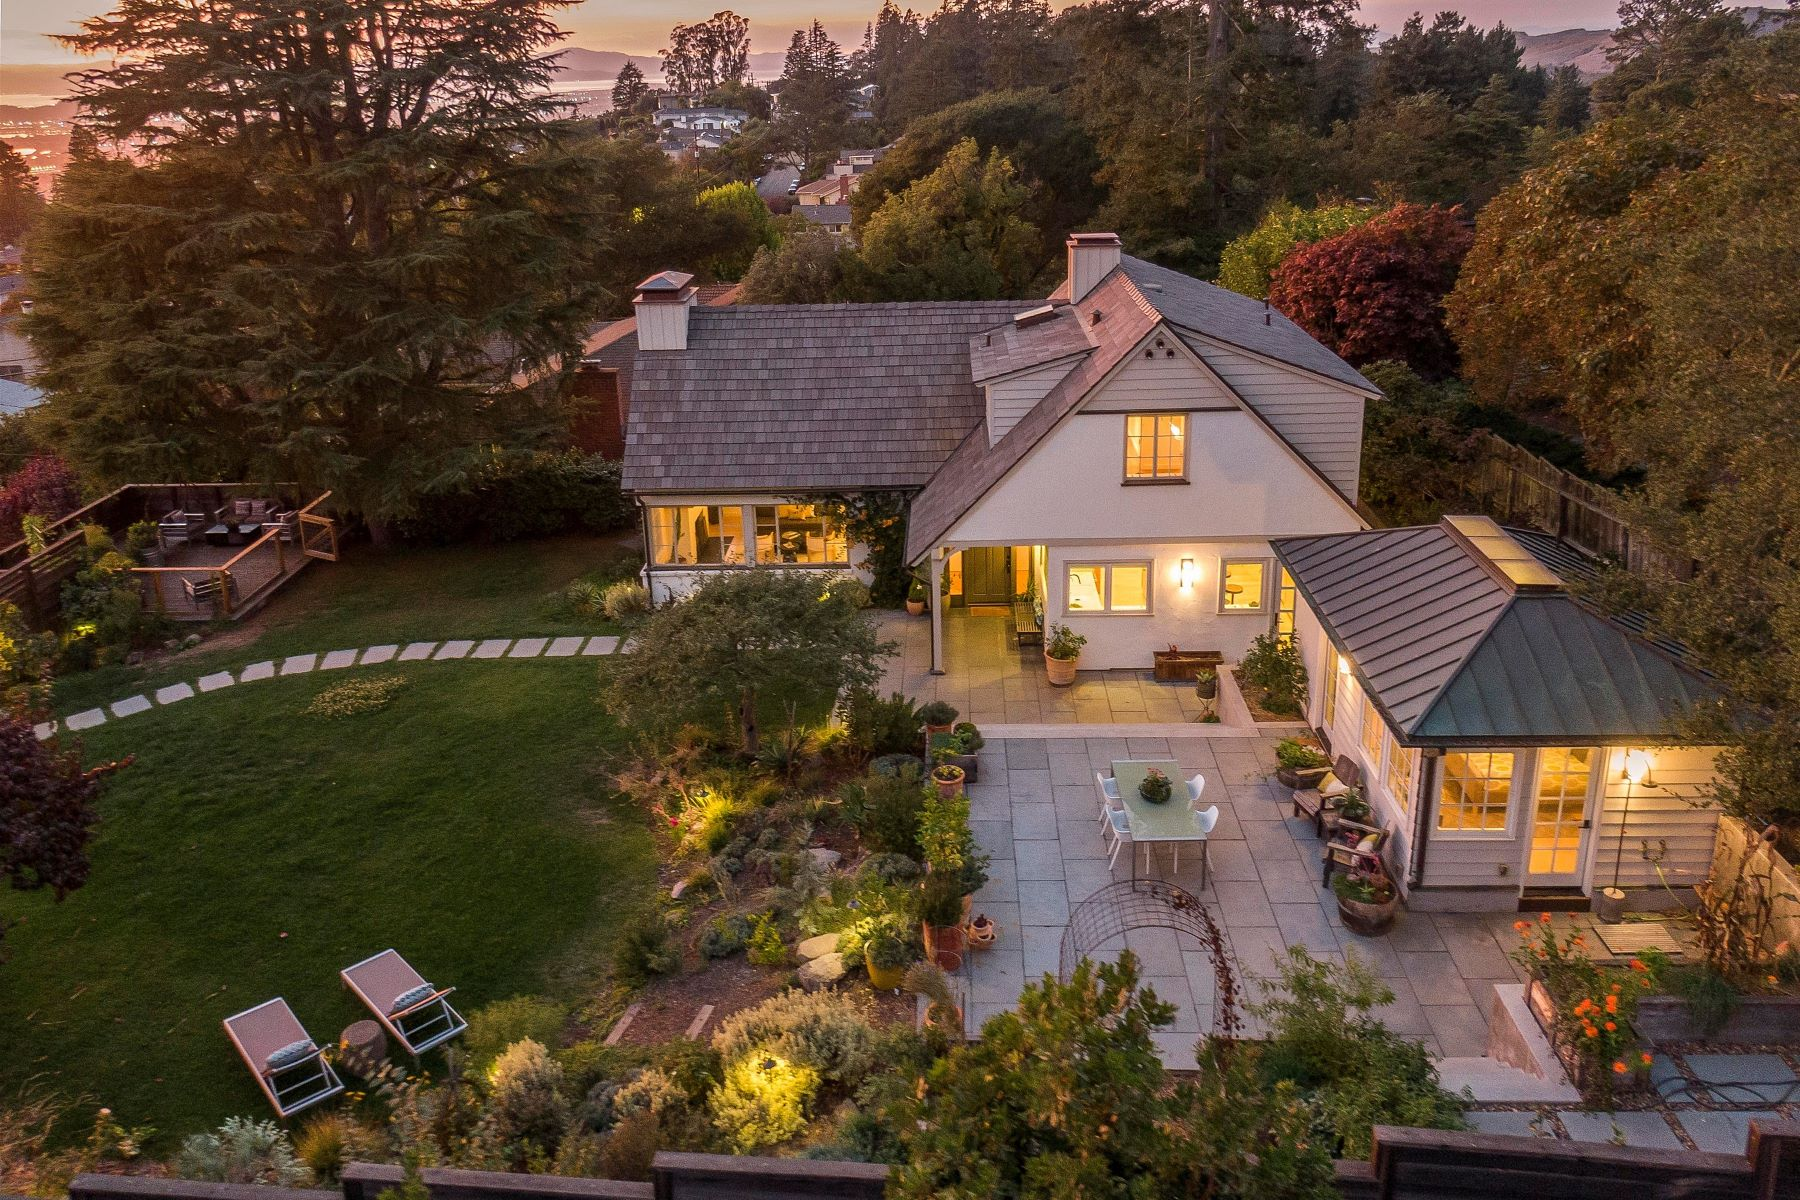 Single Family Homes for Active at Stunning Home - Private Setting - Bay Views 889 Creston Road Berkeley, California 94708 United States